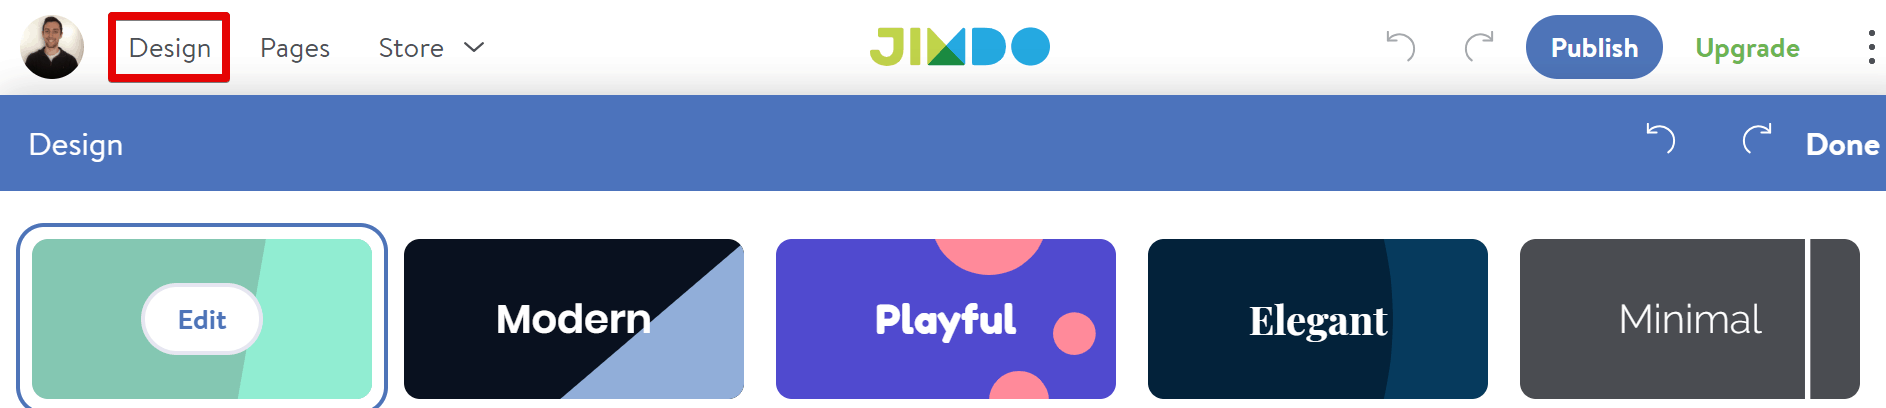 Jimdo Dolphin vs. Jimdo Creator – 6 Key Areas Compared 2019-image6